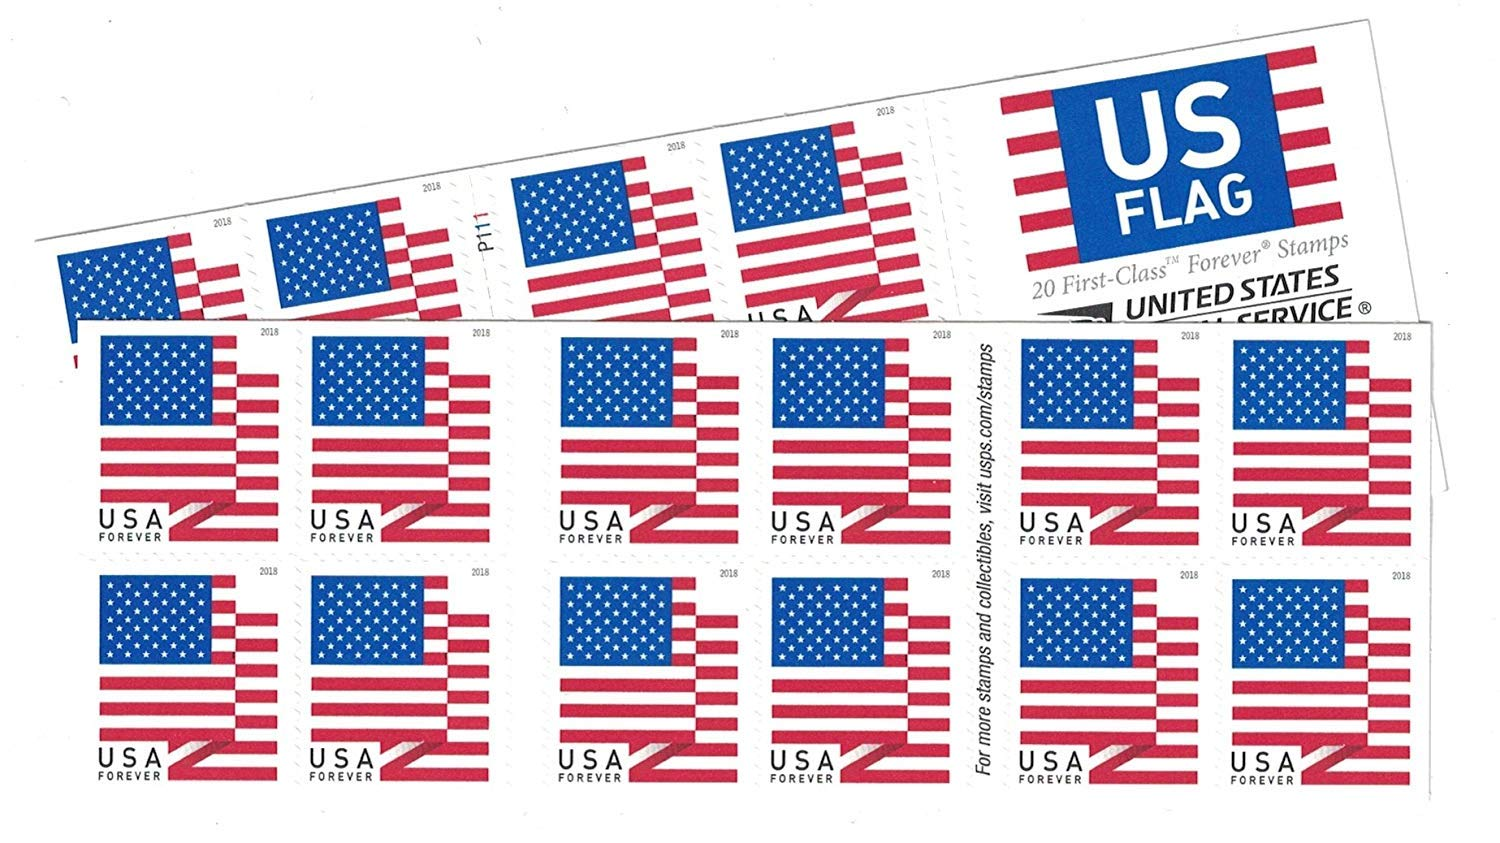 USPS Us-Flag-Forever-Stamps-40 US Flag Forever Stamps - 40 Stamps (Two Books of 20) Packaging May Vary, Blue Red White by USPS